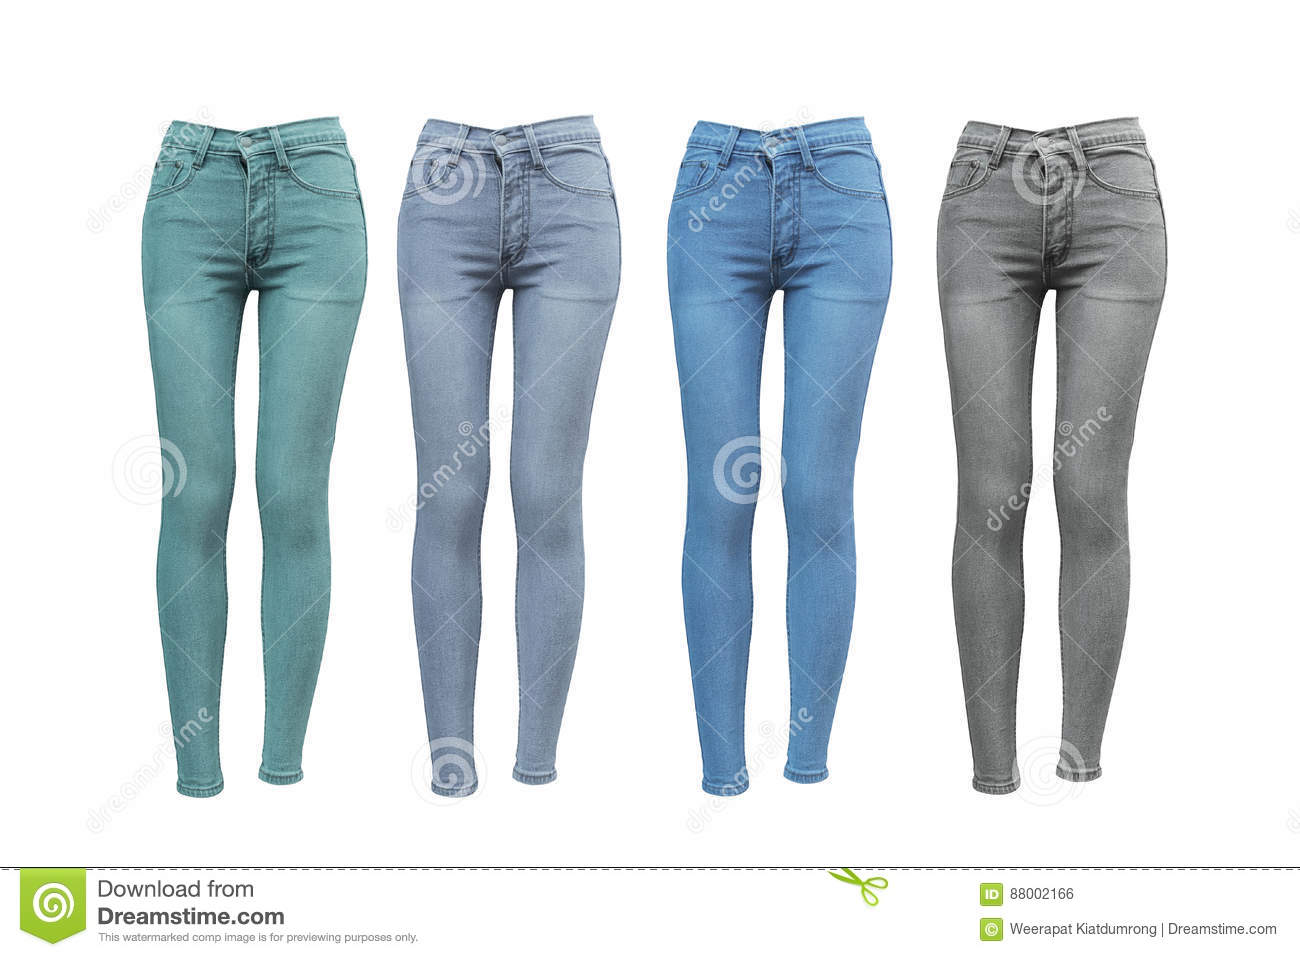 What to wear with skinny jeans of different colors